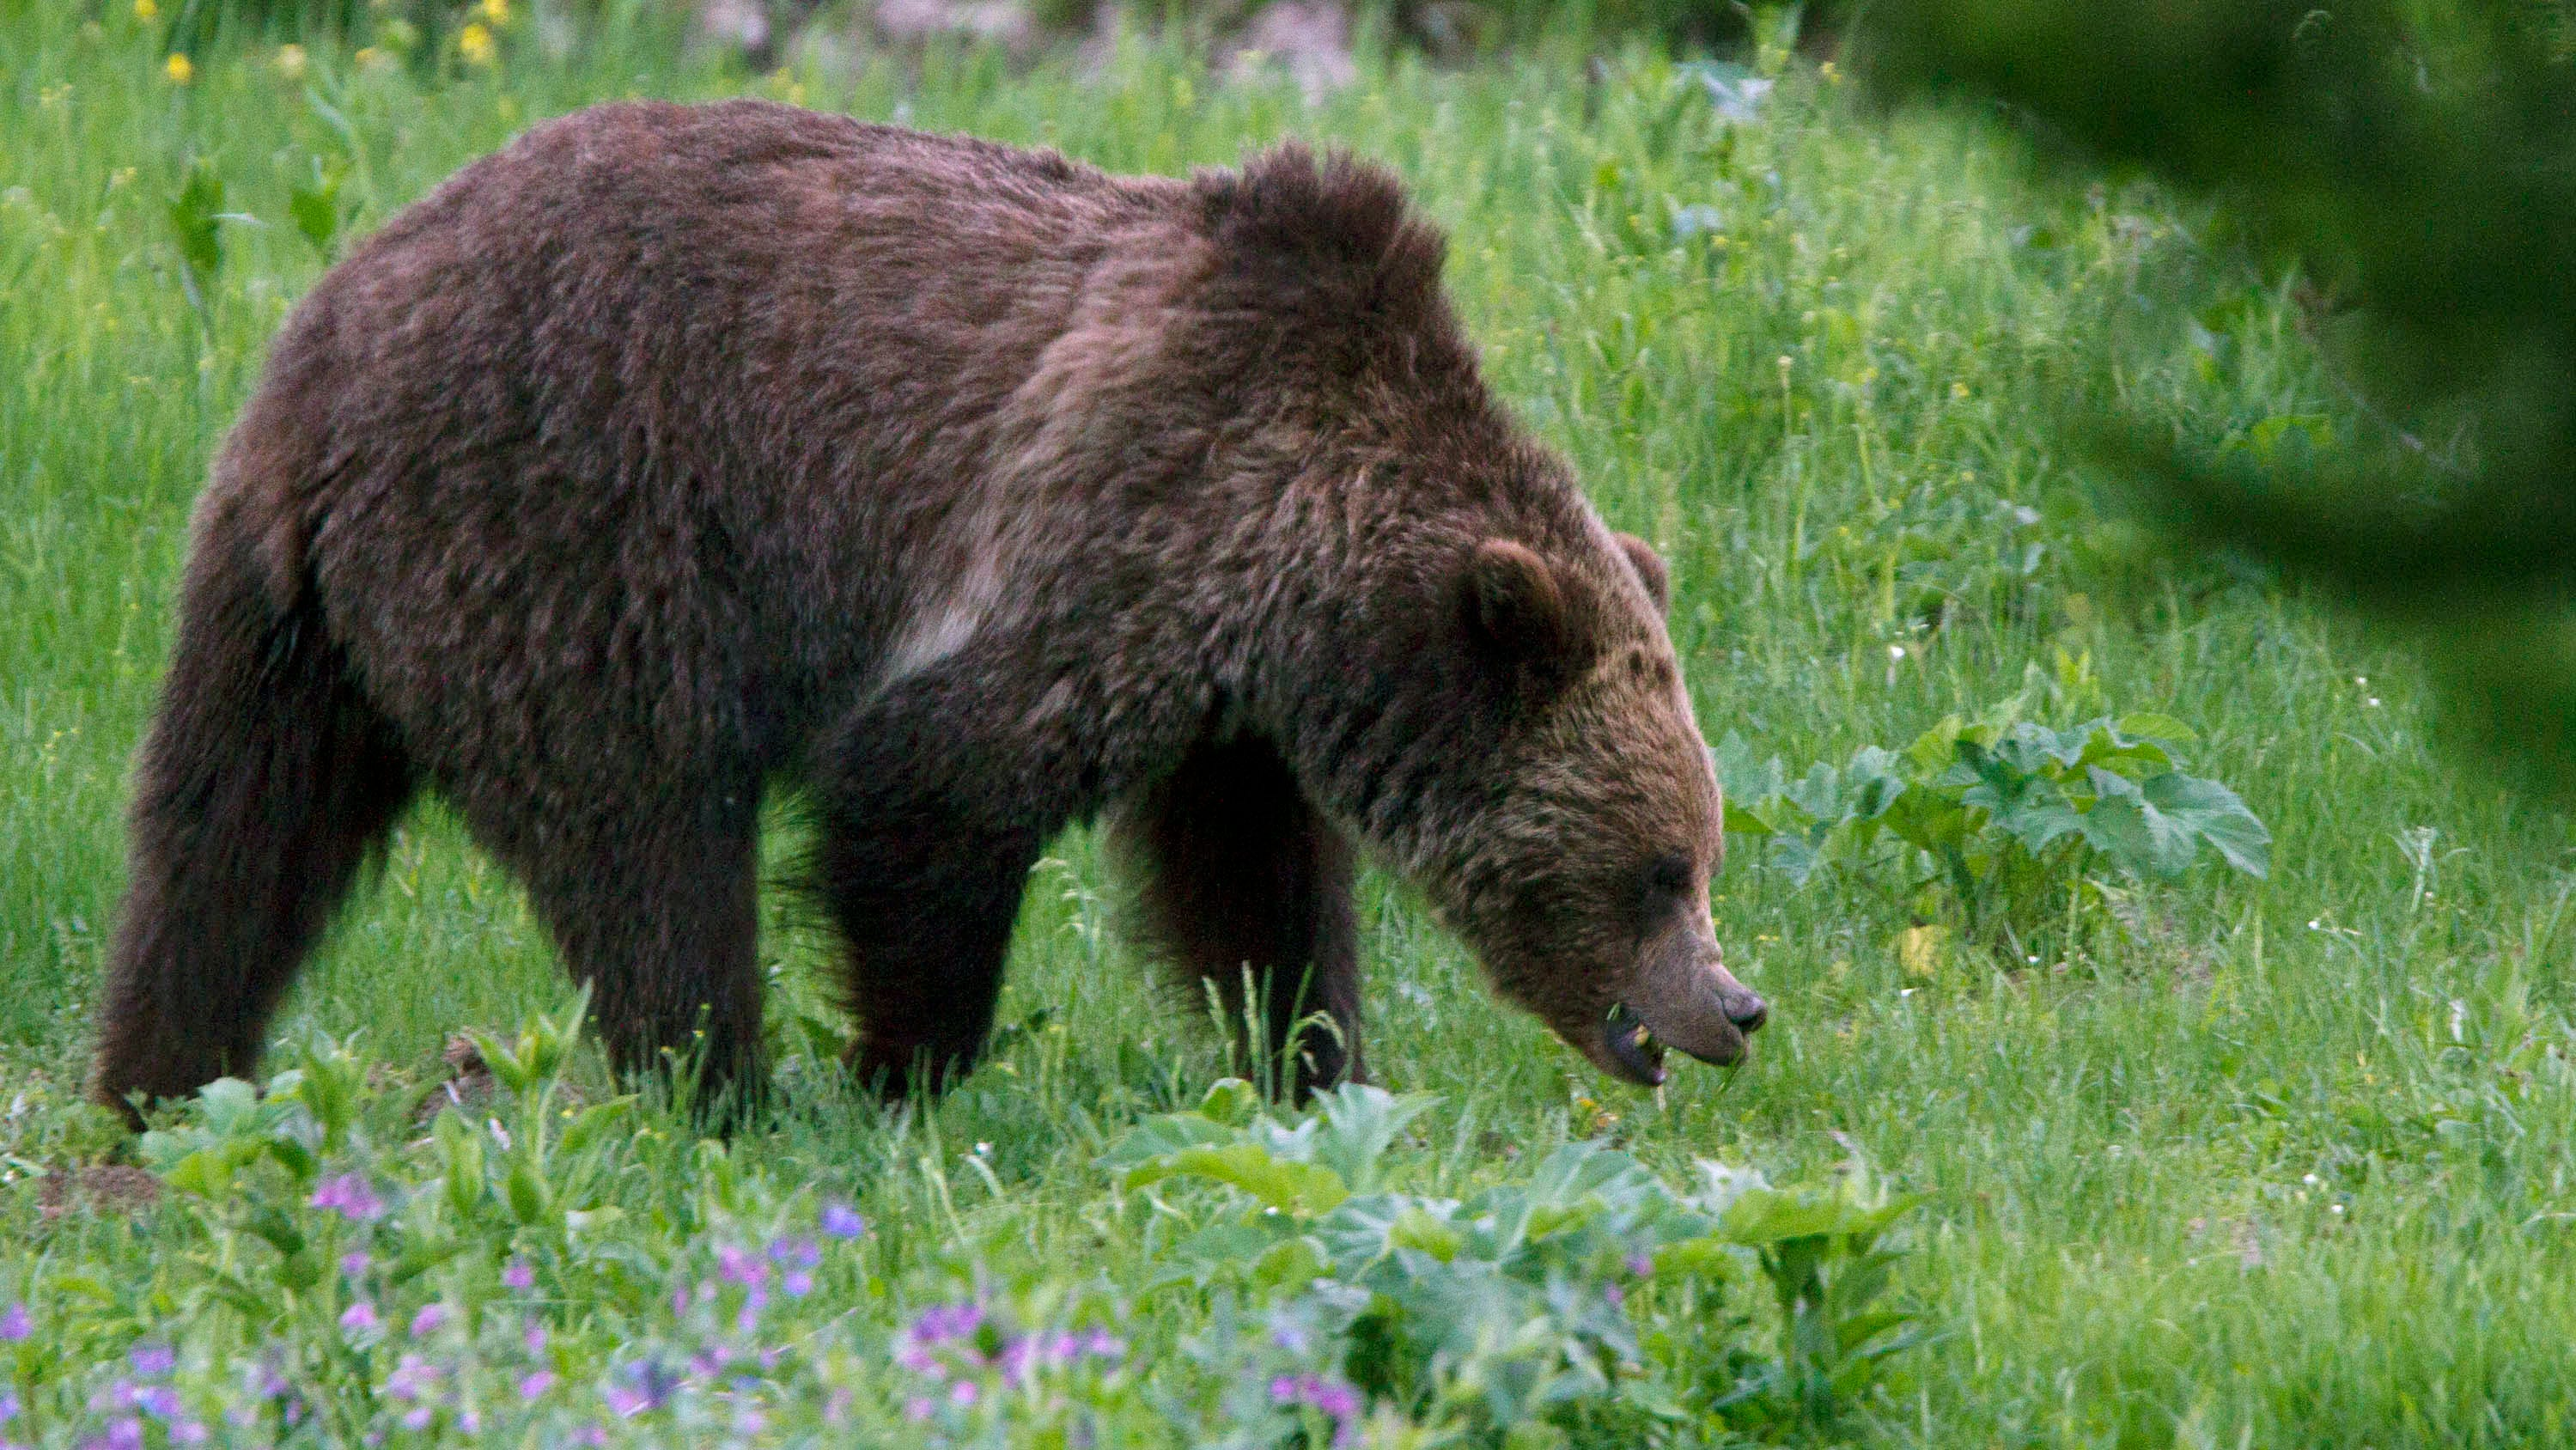 A grizzly bear roams near Beaver Lake in Yellowstone National Park. Opponents of grizzly bear hunts planned in Wyoming and Idaho are asking a judge to further delay hunting while he considers a request to restore federal protections for the animals.